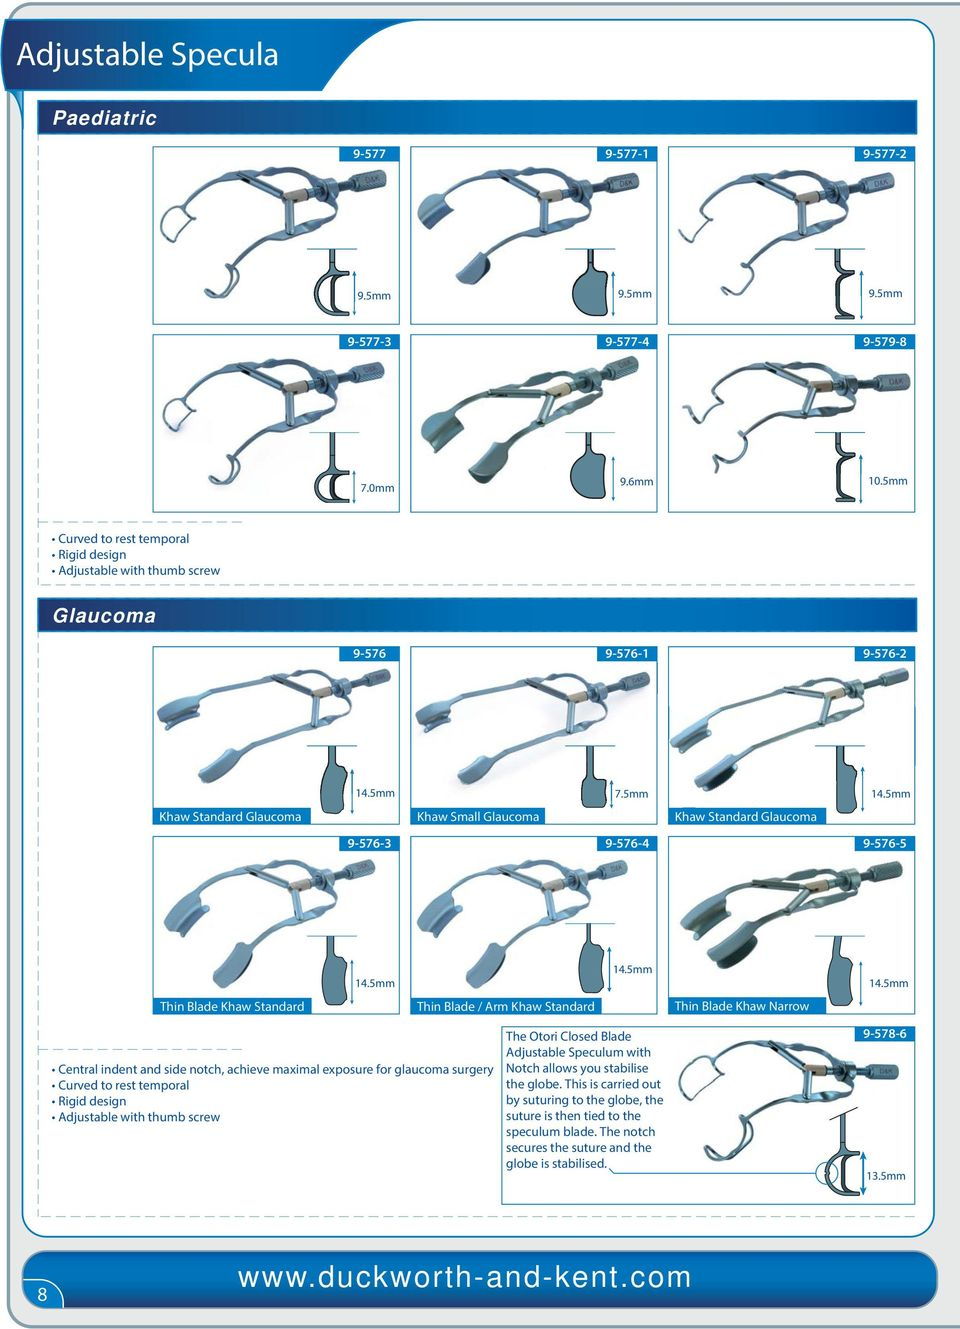 Khaw Narrow Central indent and side notch, achieve maximal exposure for glaucoma surgery The Otori Closed Blade Adjustable Speculum with Notch allows you